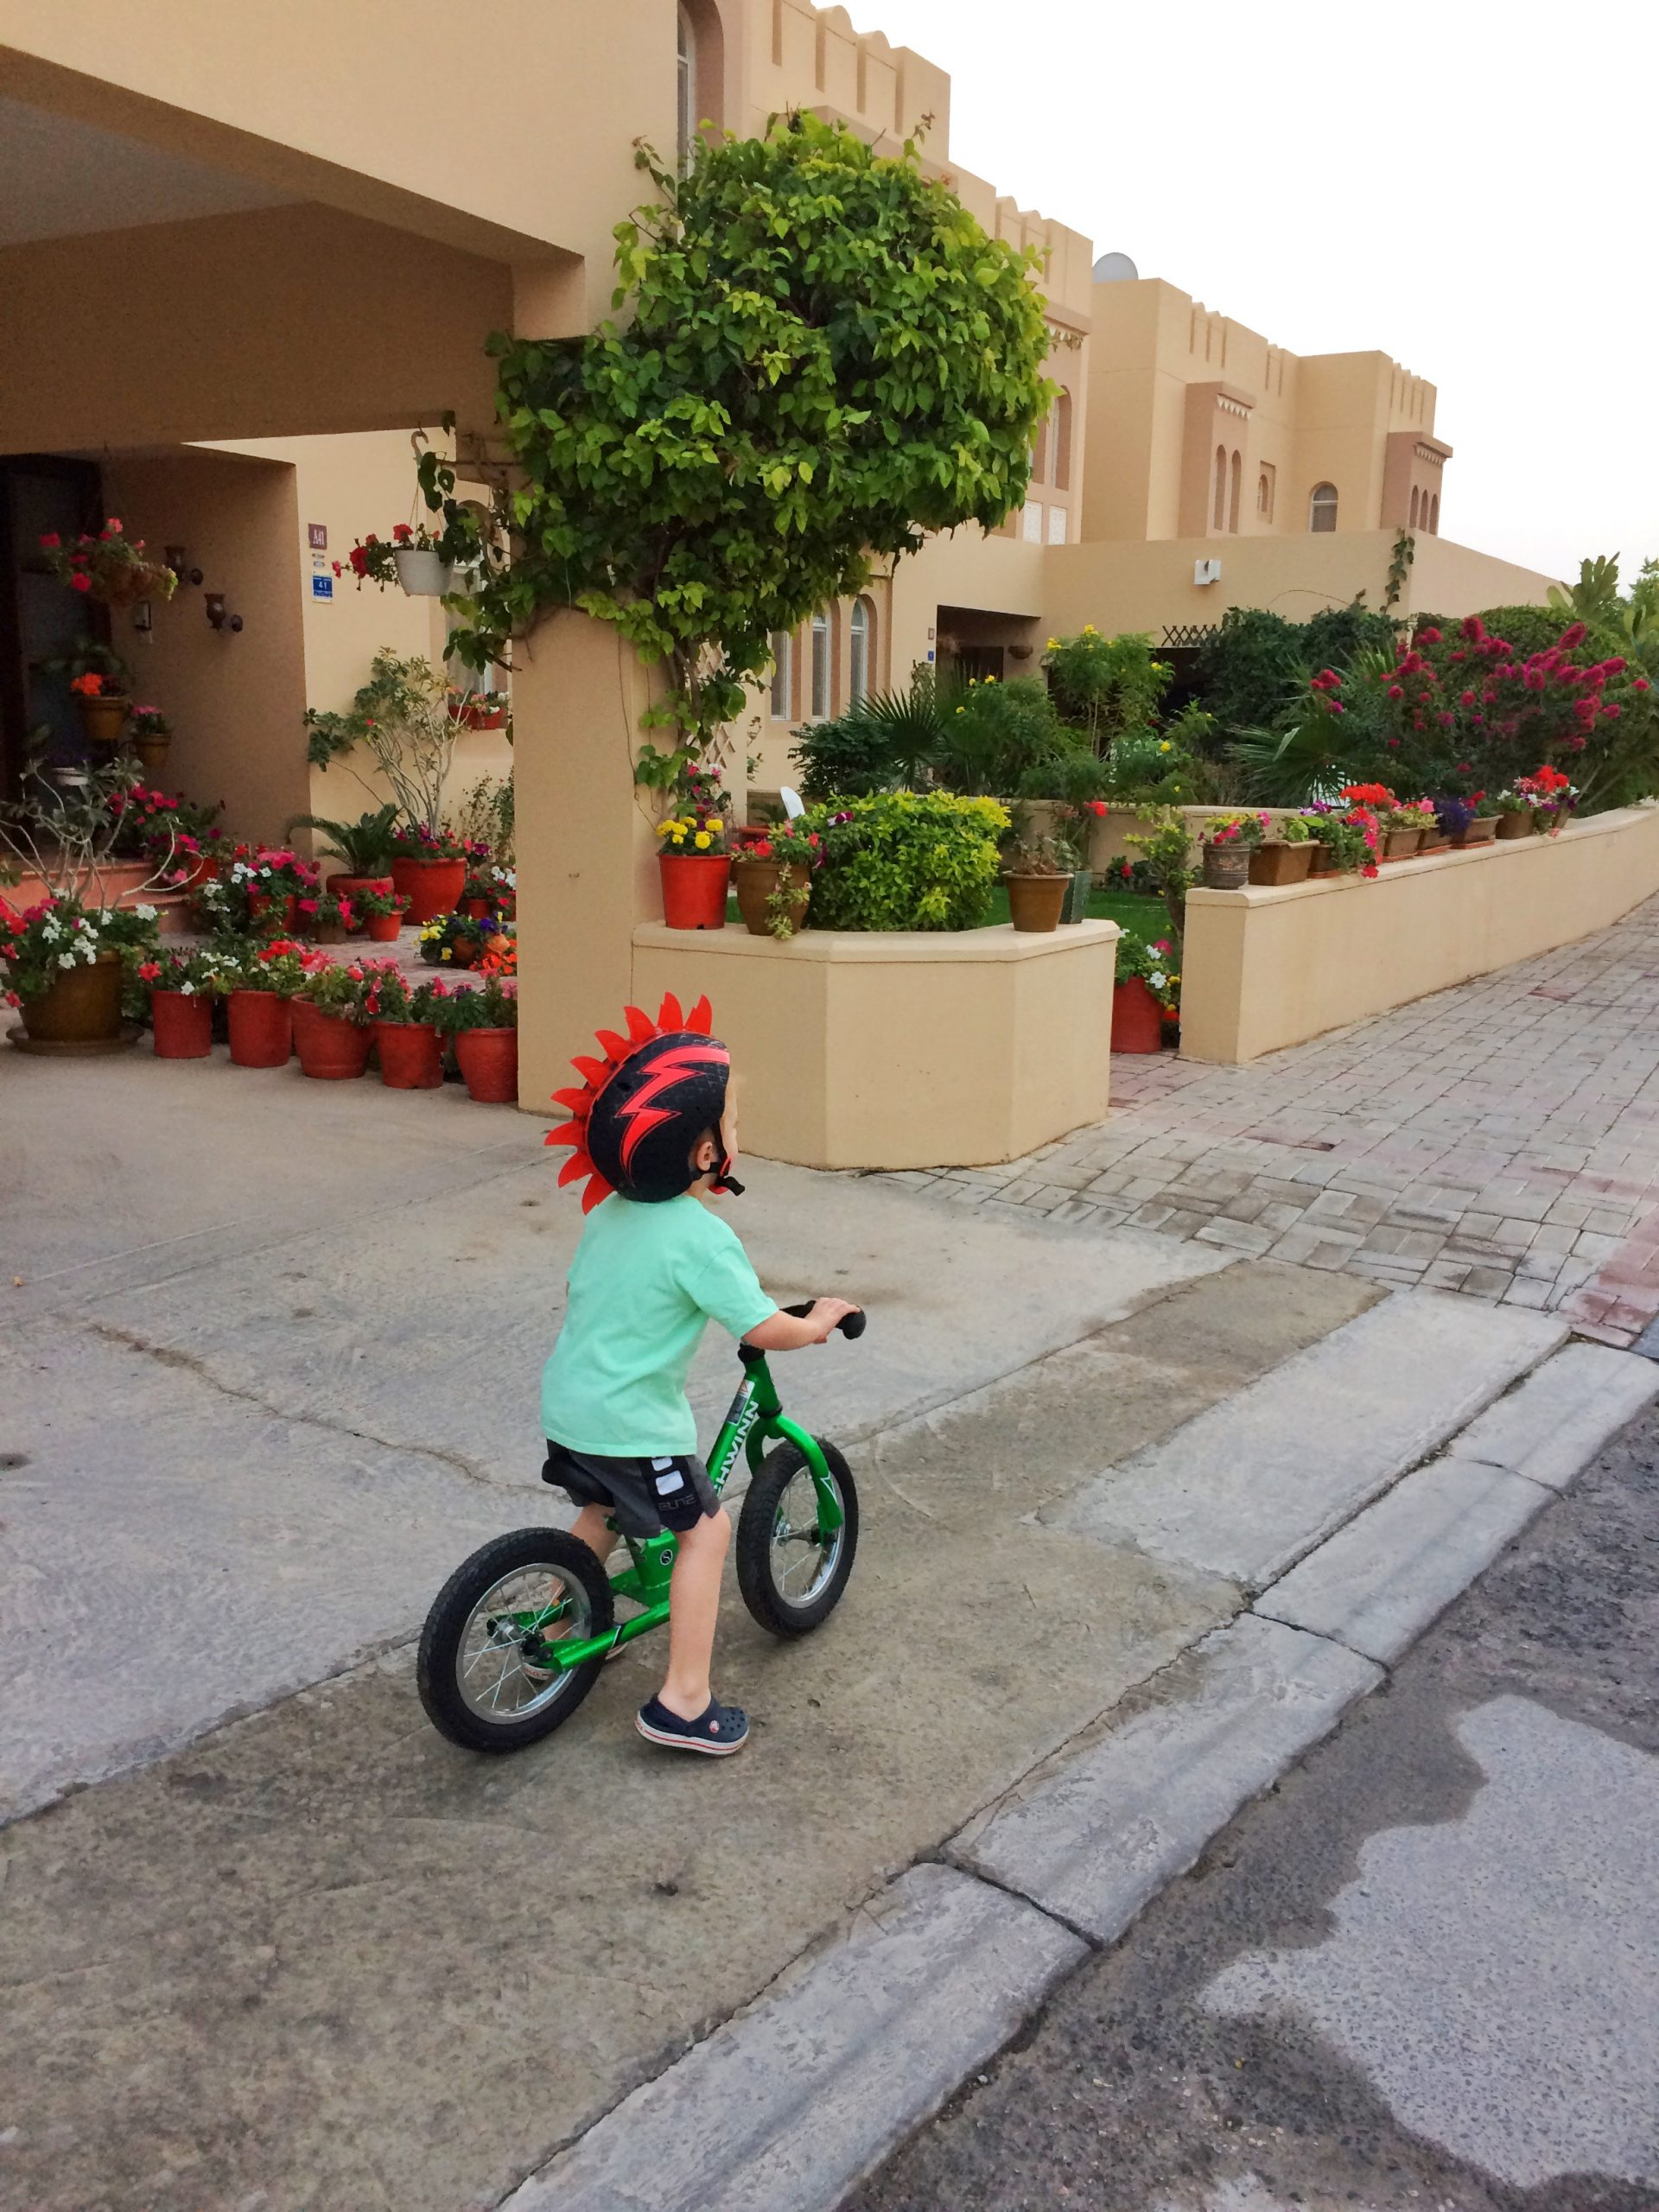 Toddler riding his bike on a compound in the Middle East